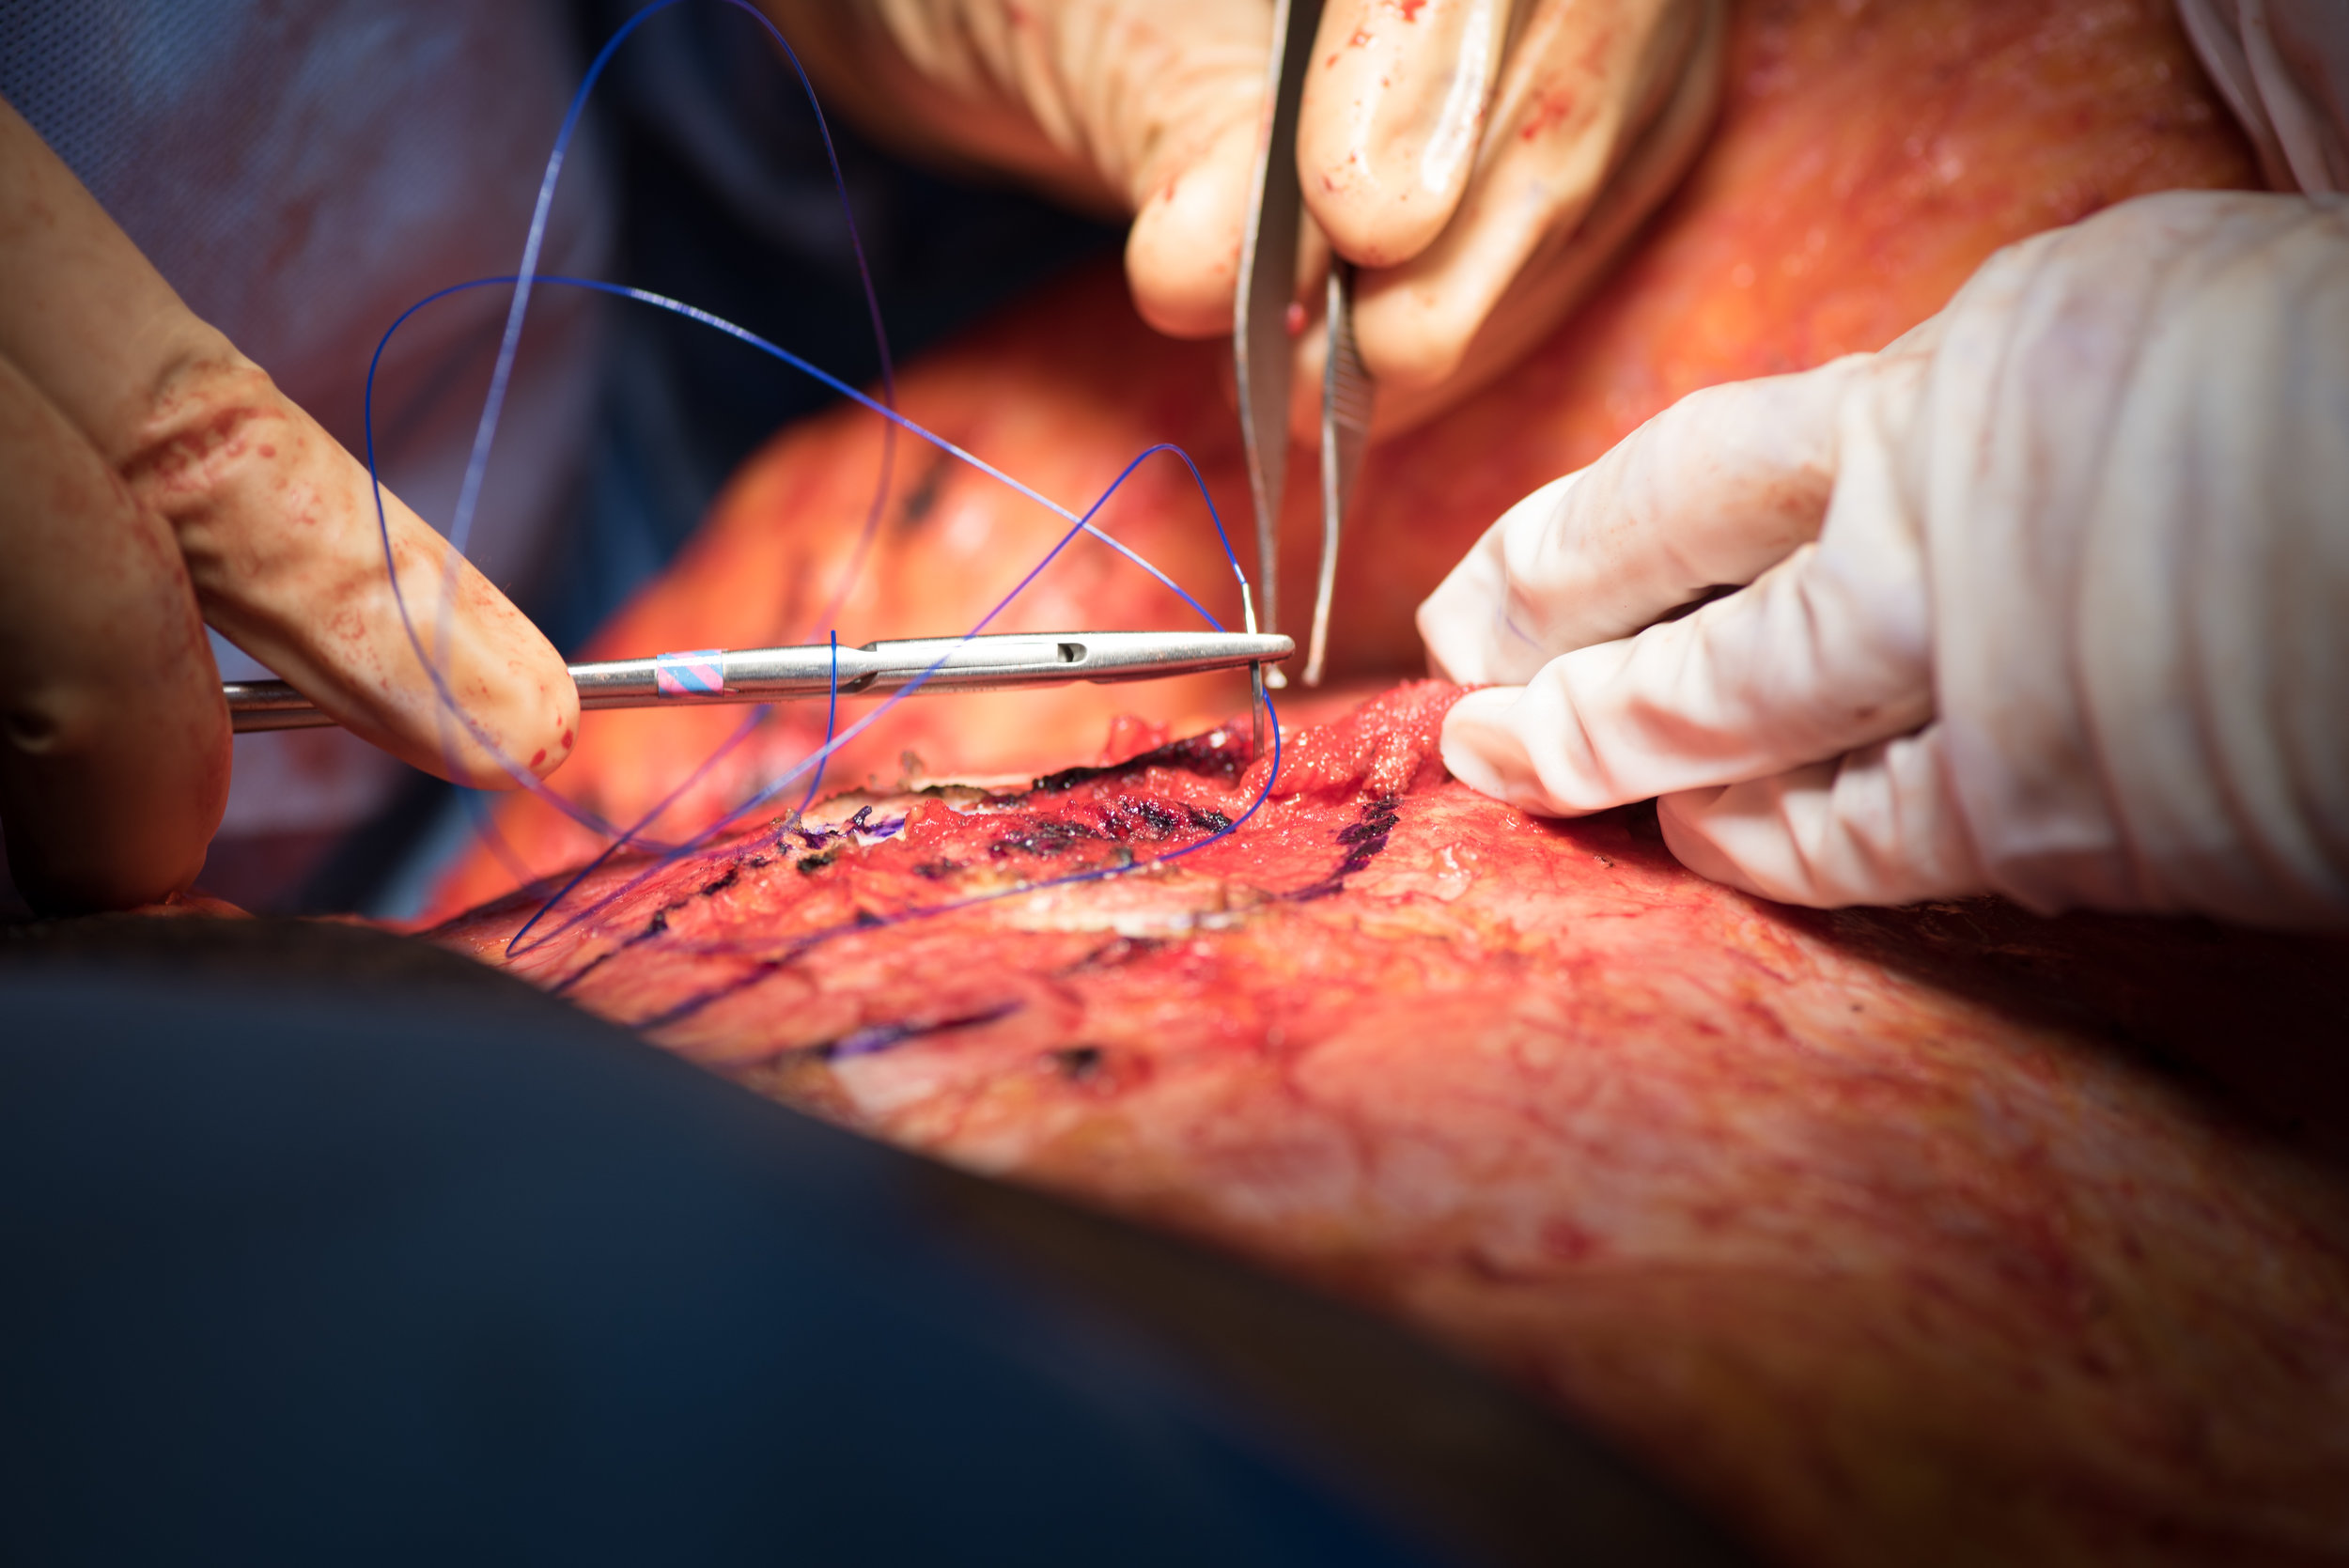 a day in the life of a plastic surgeon, behind the scenes plastic surgery, what does surgery look like, hz plastic surgery